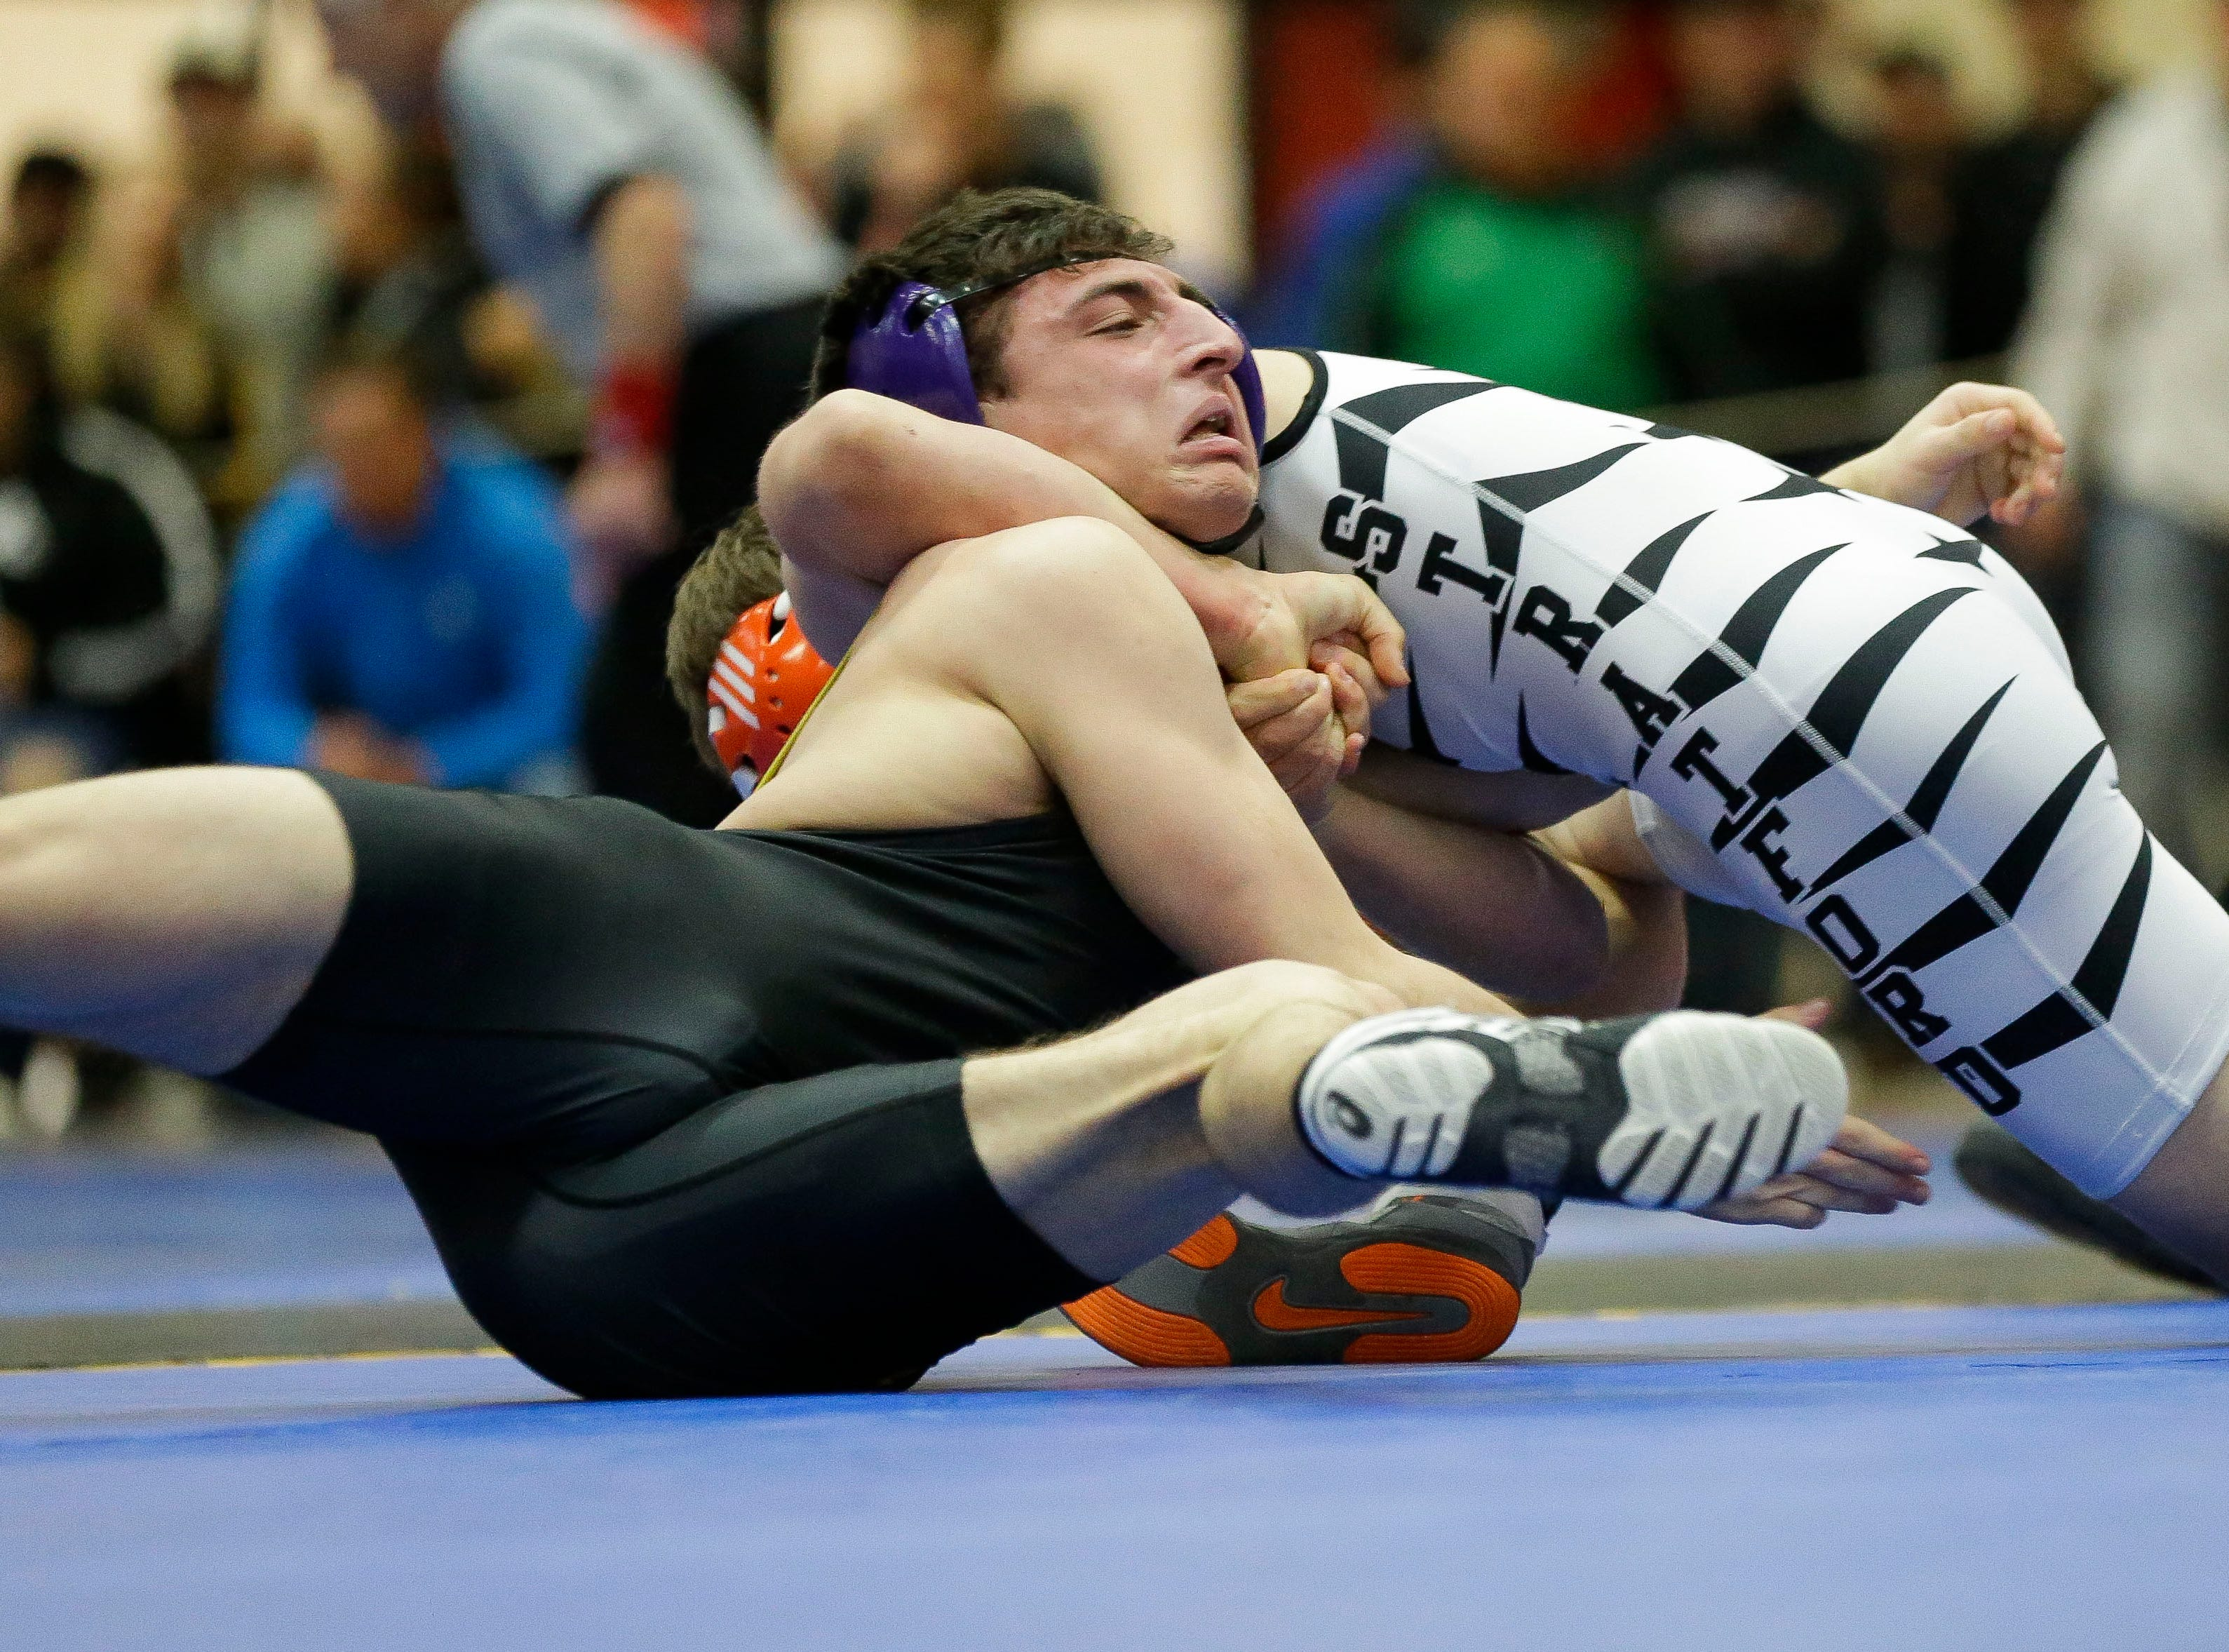 Pittsville's Beau Merritt scrambles against Stratford's Jacob Heiden in a 138-pound championship match on Saturday, February 16, 2019, during a Division 3 sectional meet at Shawano High School in Shawano, Wis.